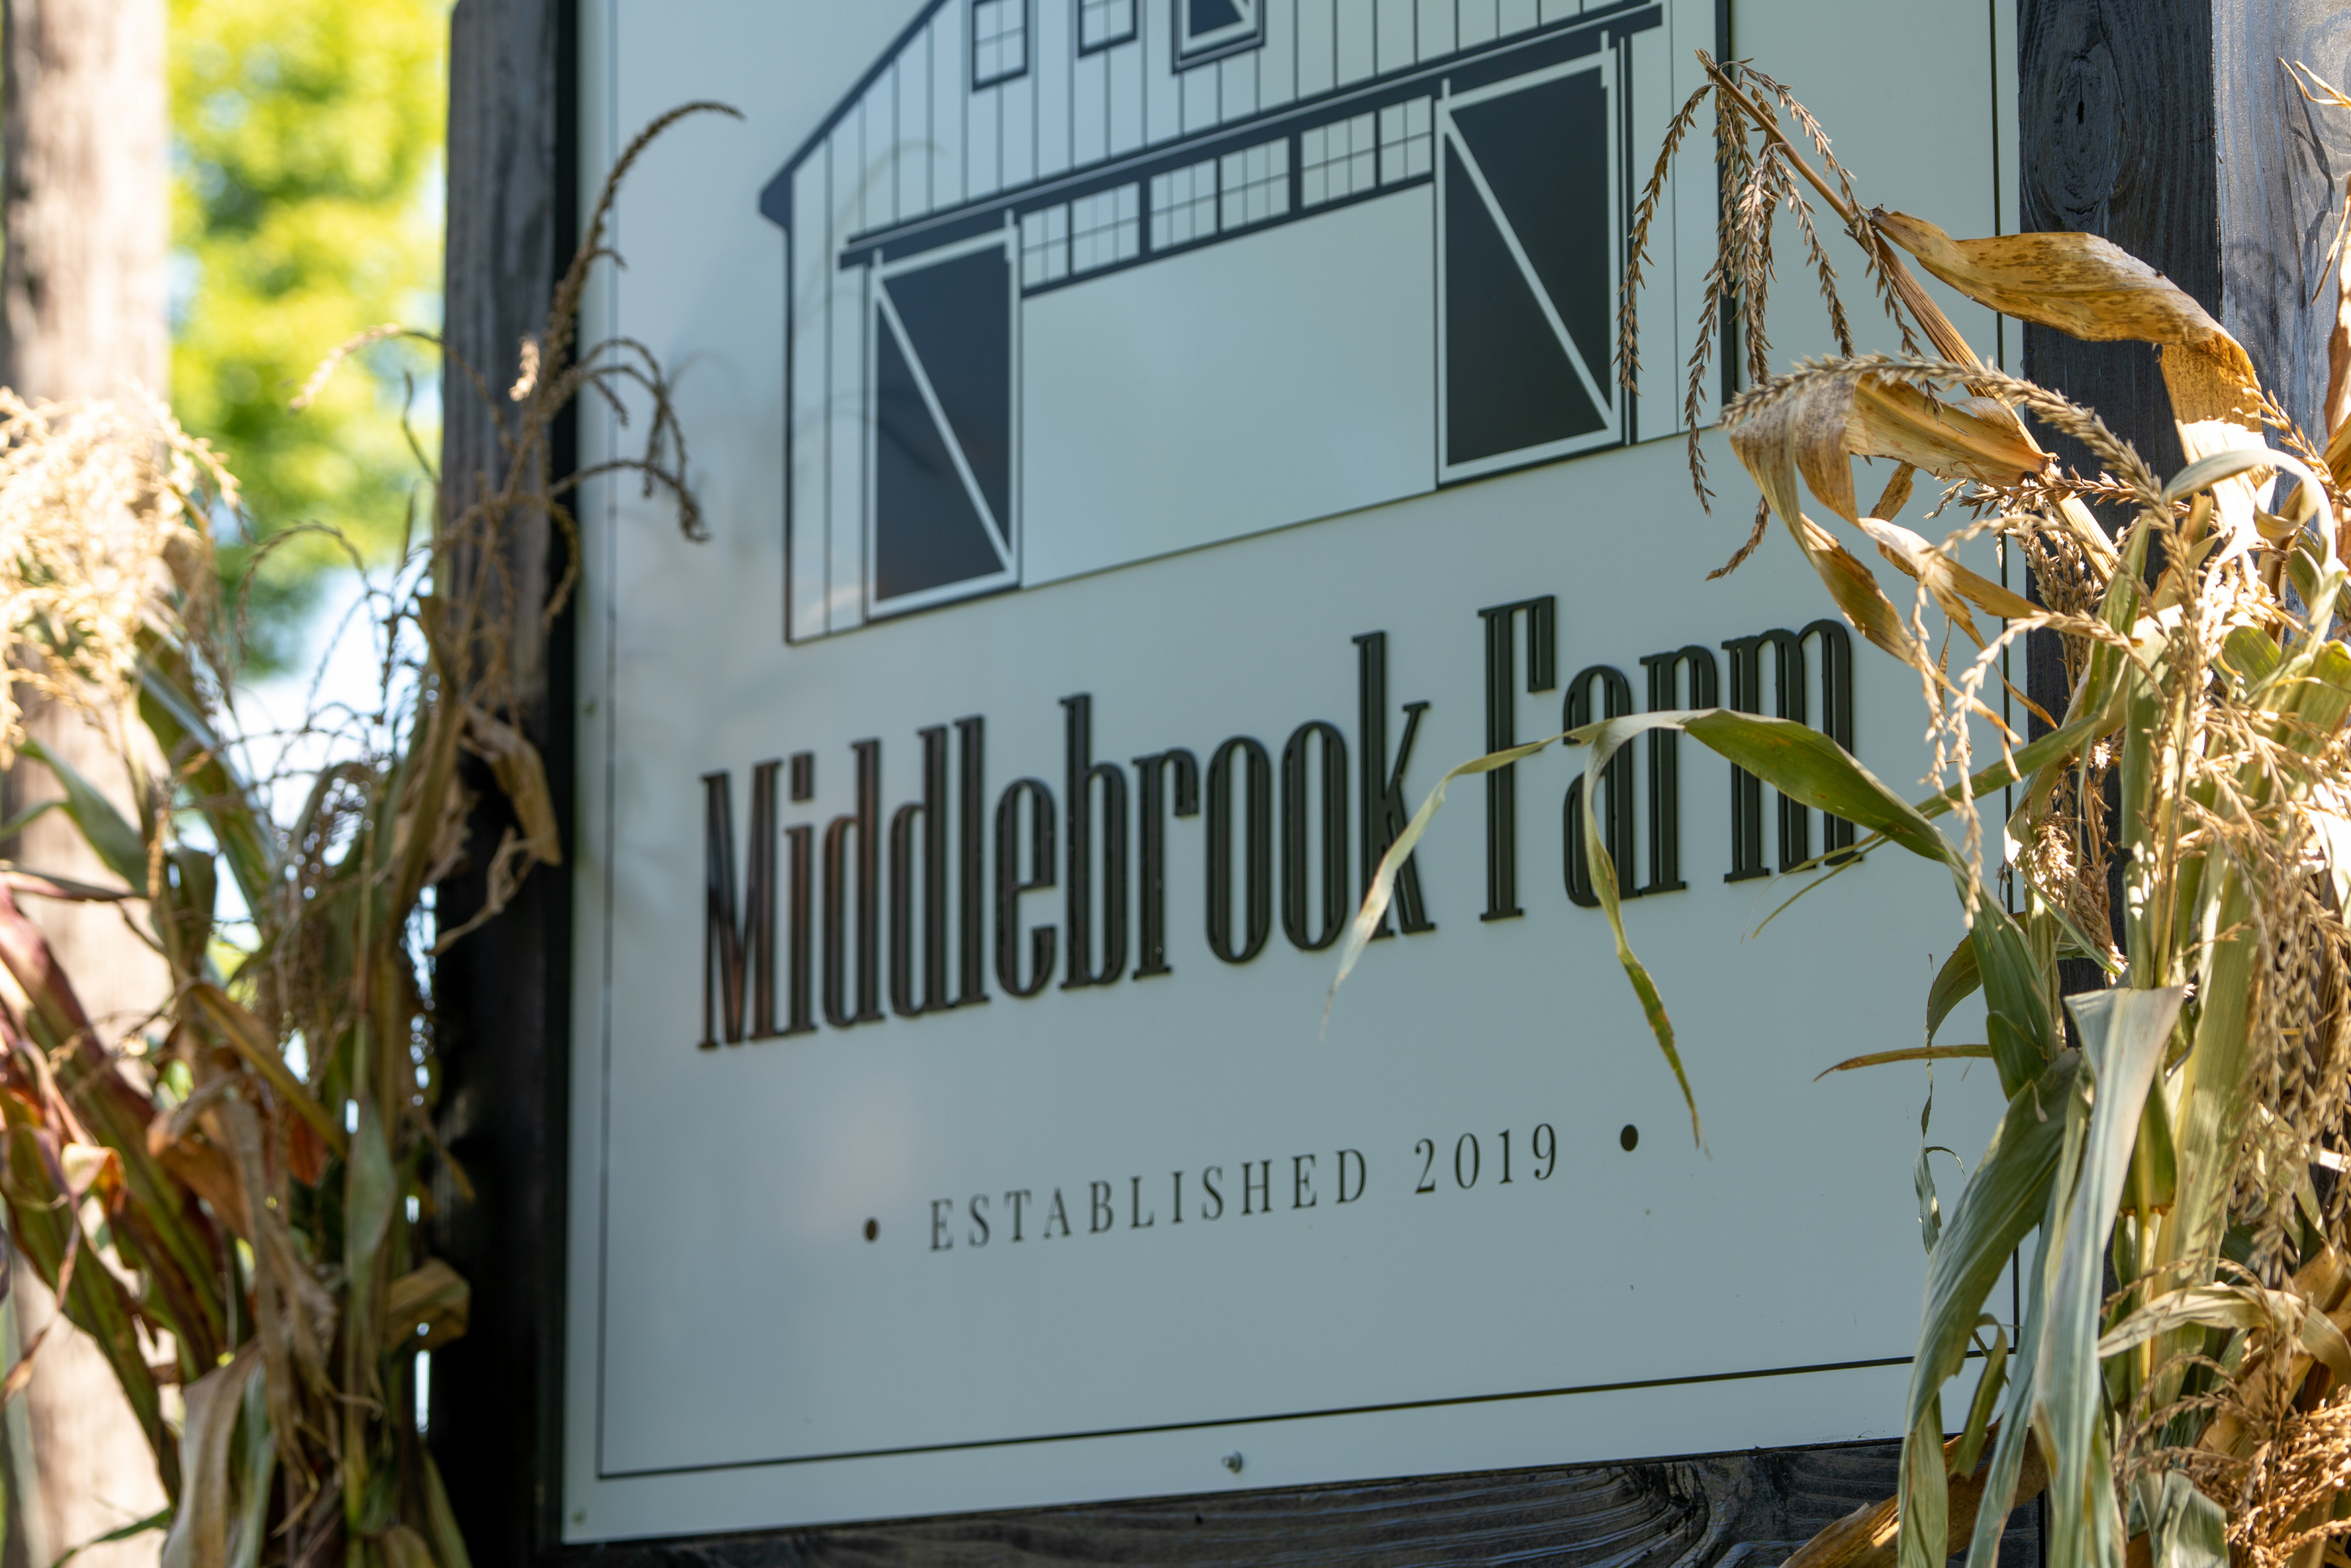 Middlebrook Sign